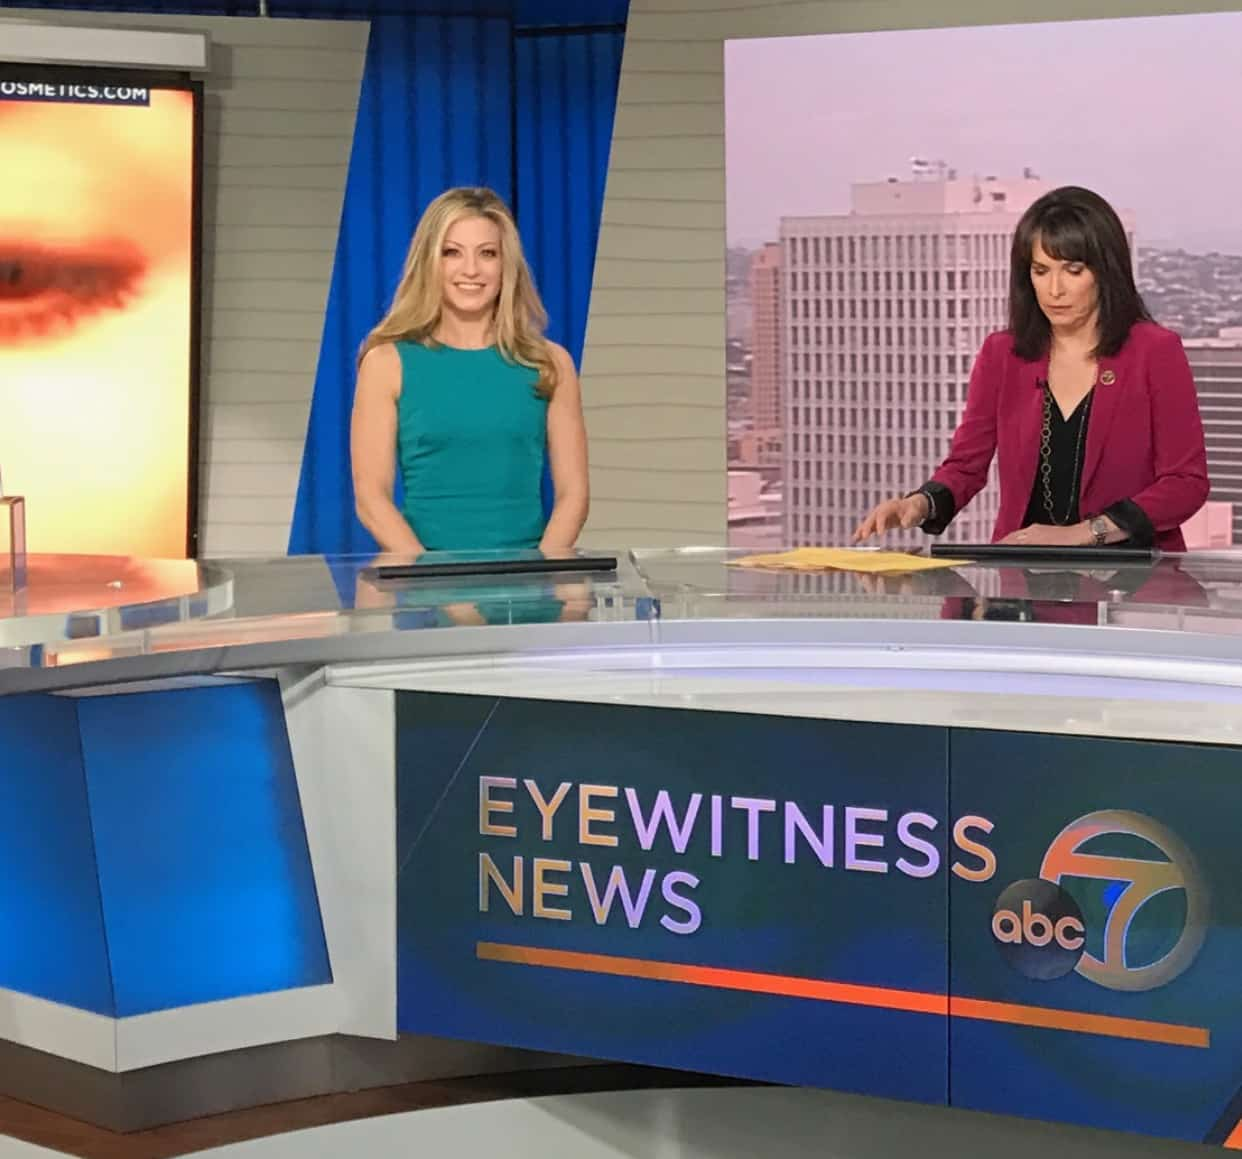 Dr. Annie Negrin on ABC7 talking hot eye makeup trends - Swoon Talent